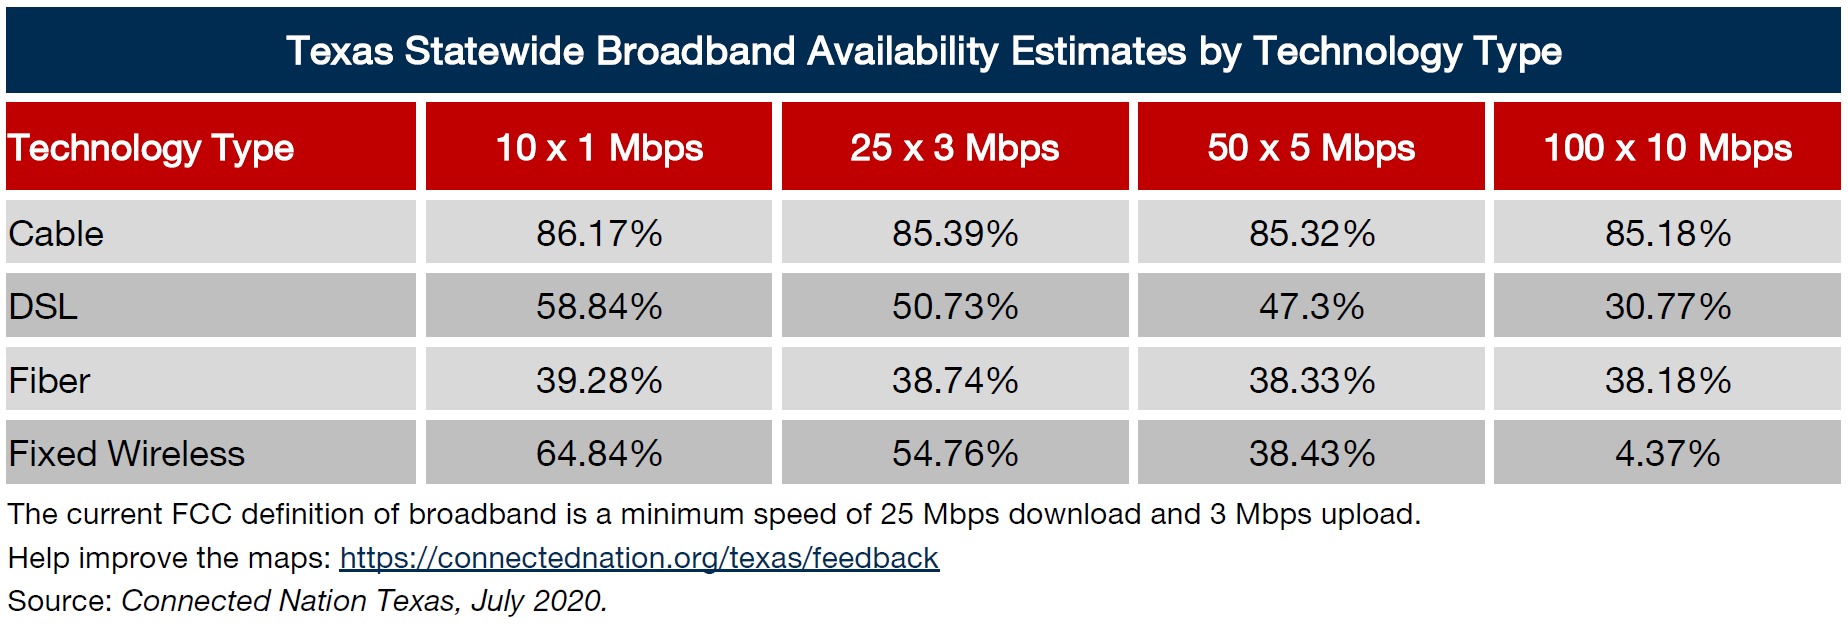 Broadband Statewide Types by Technology Type